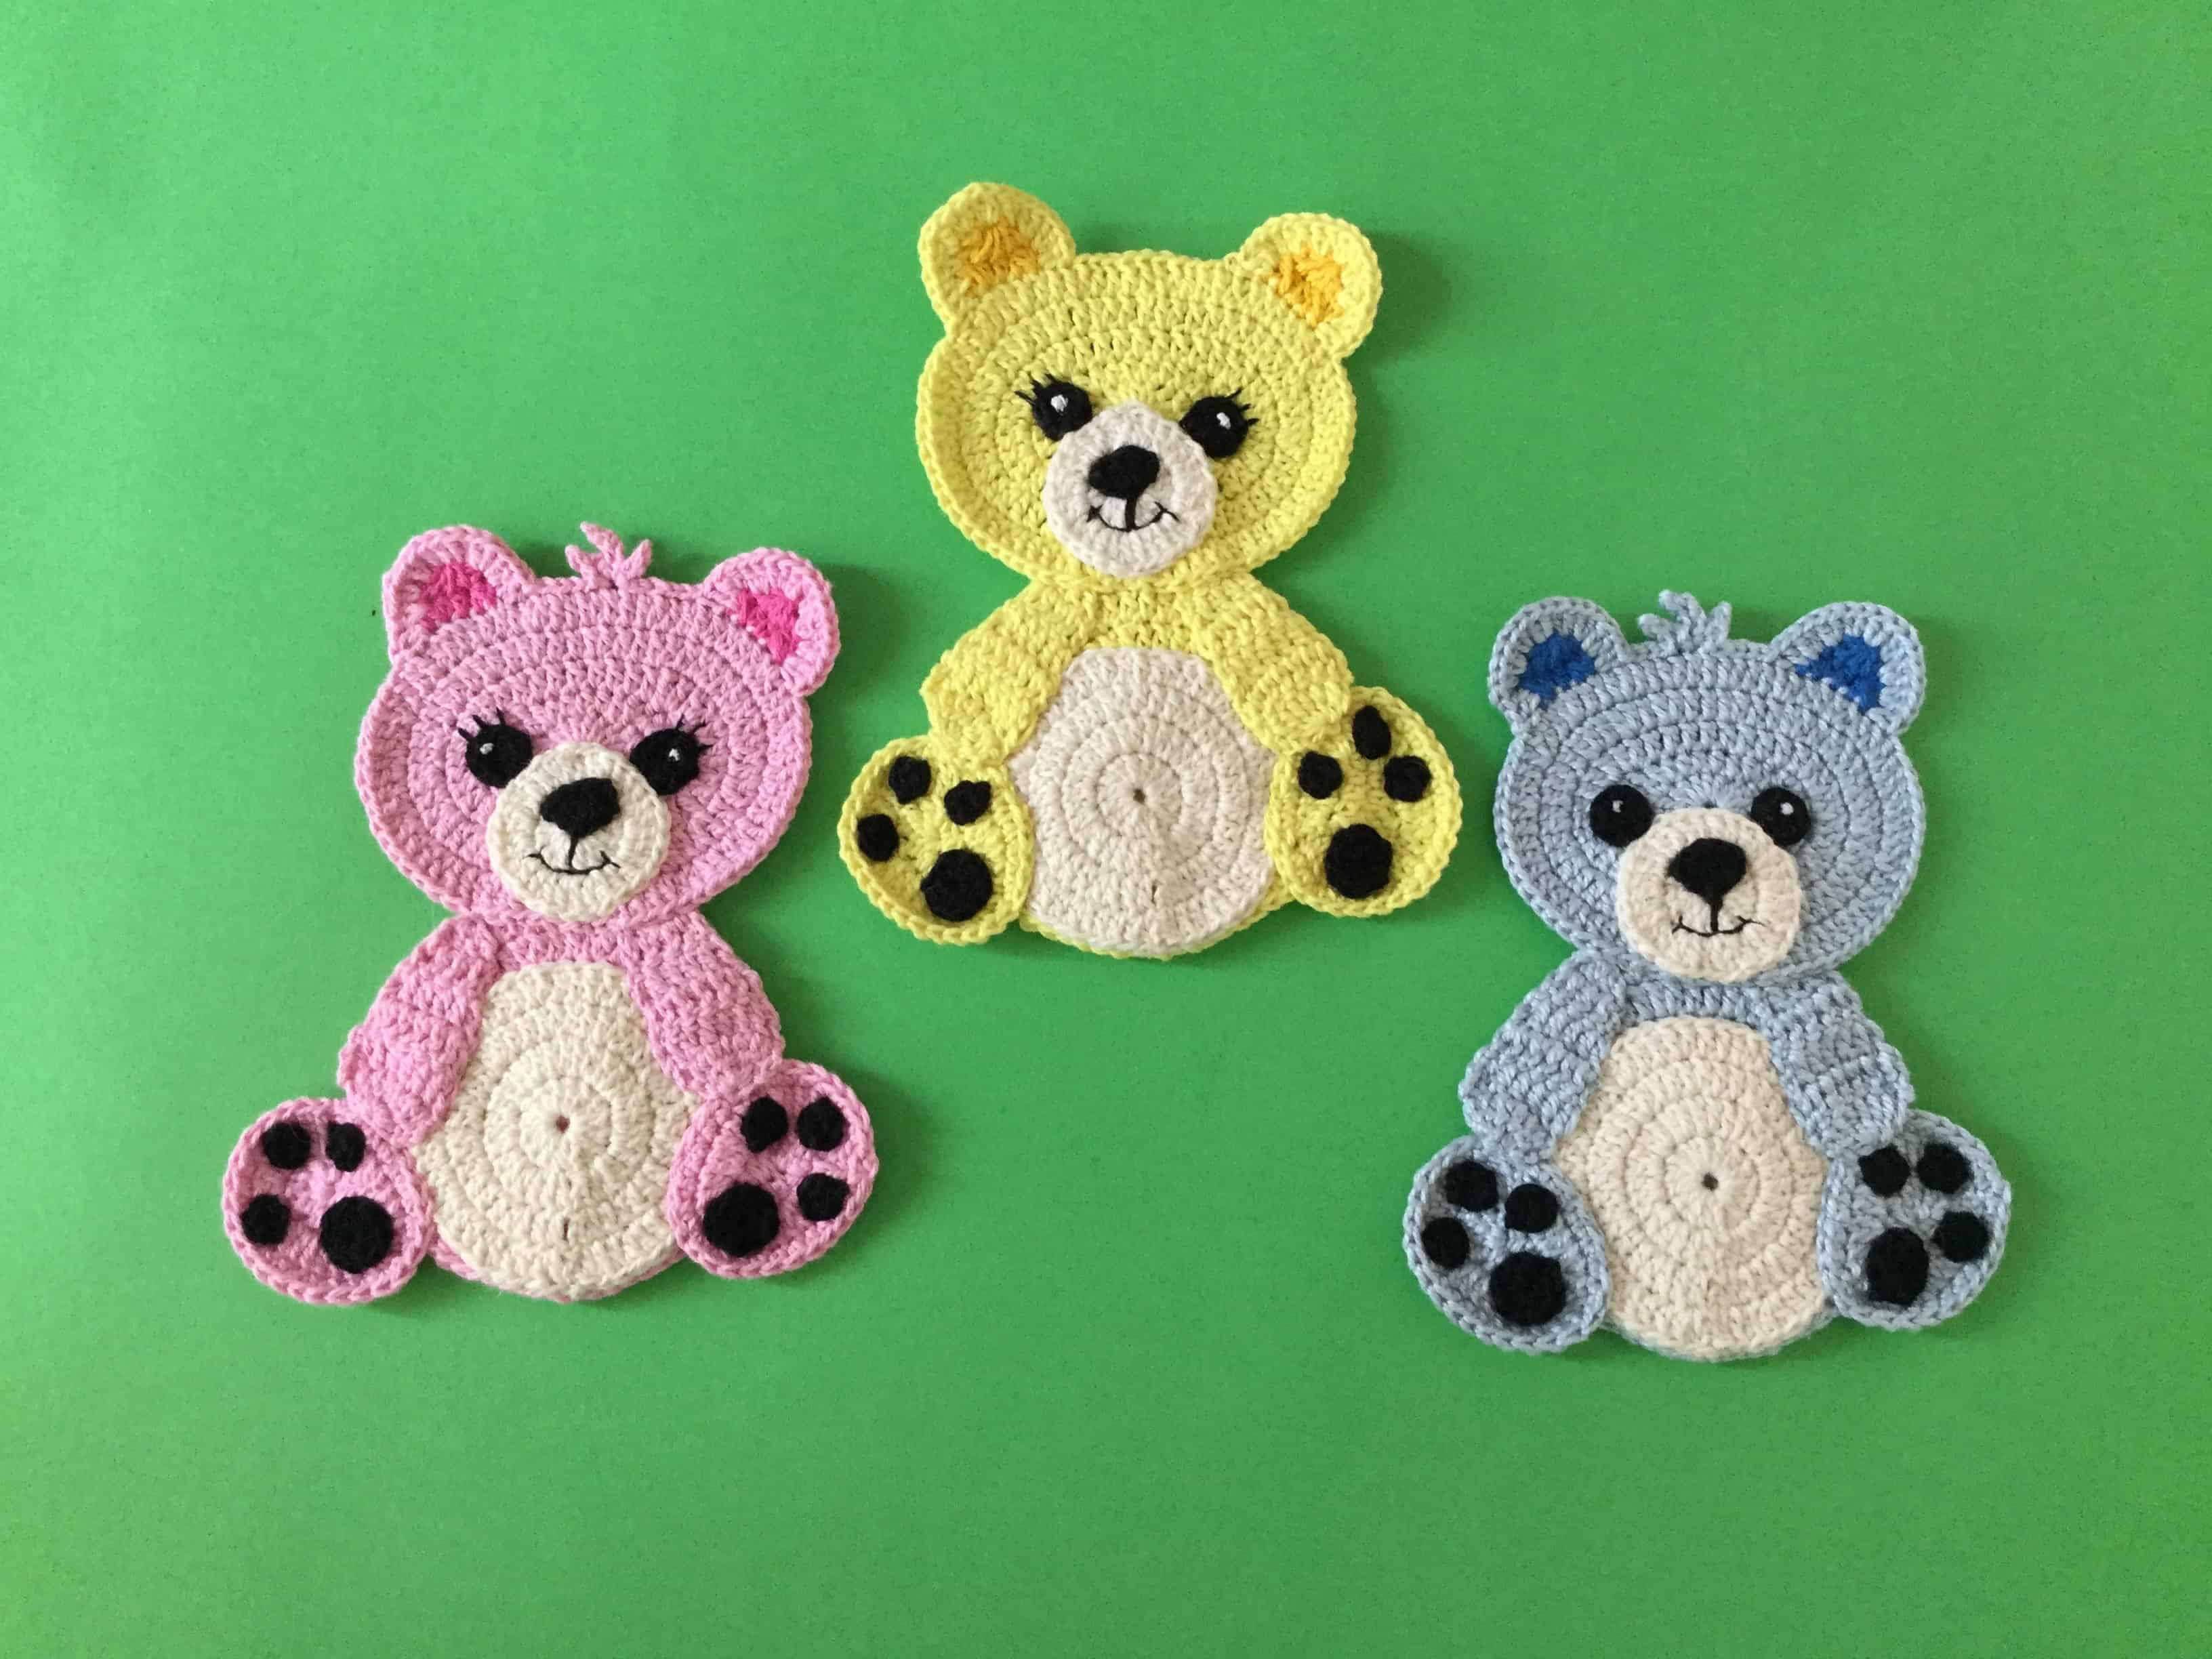 Free Teddy Bear crochet pattern - Amigurumi Today | 2448x3264